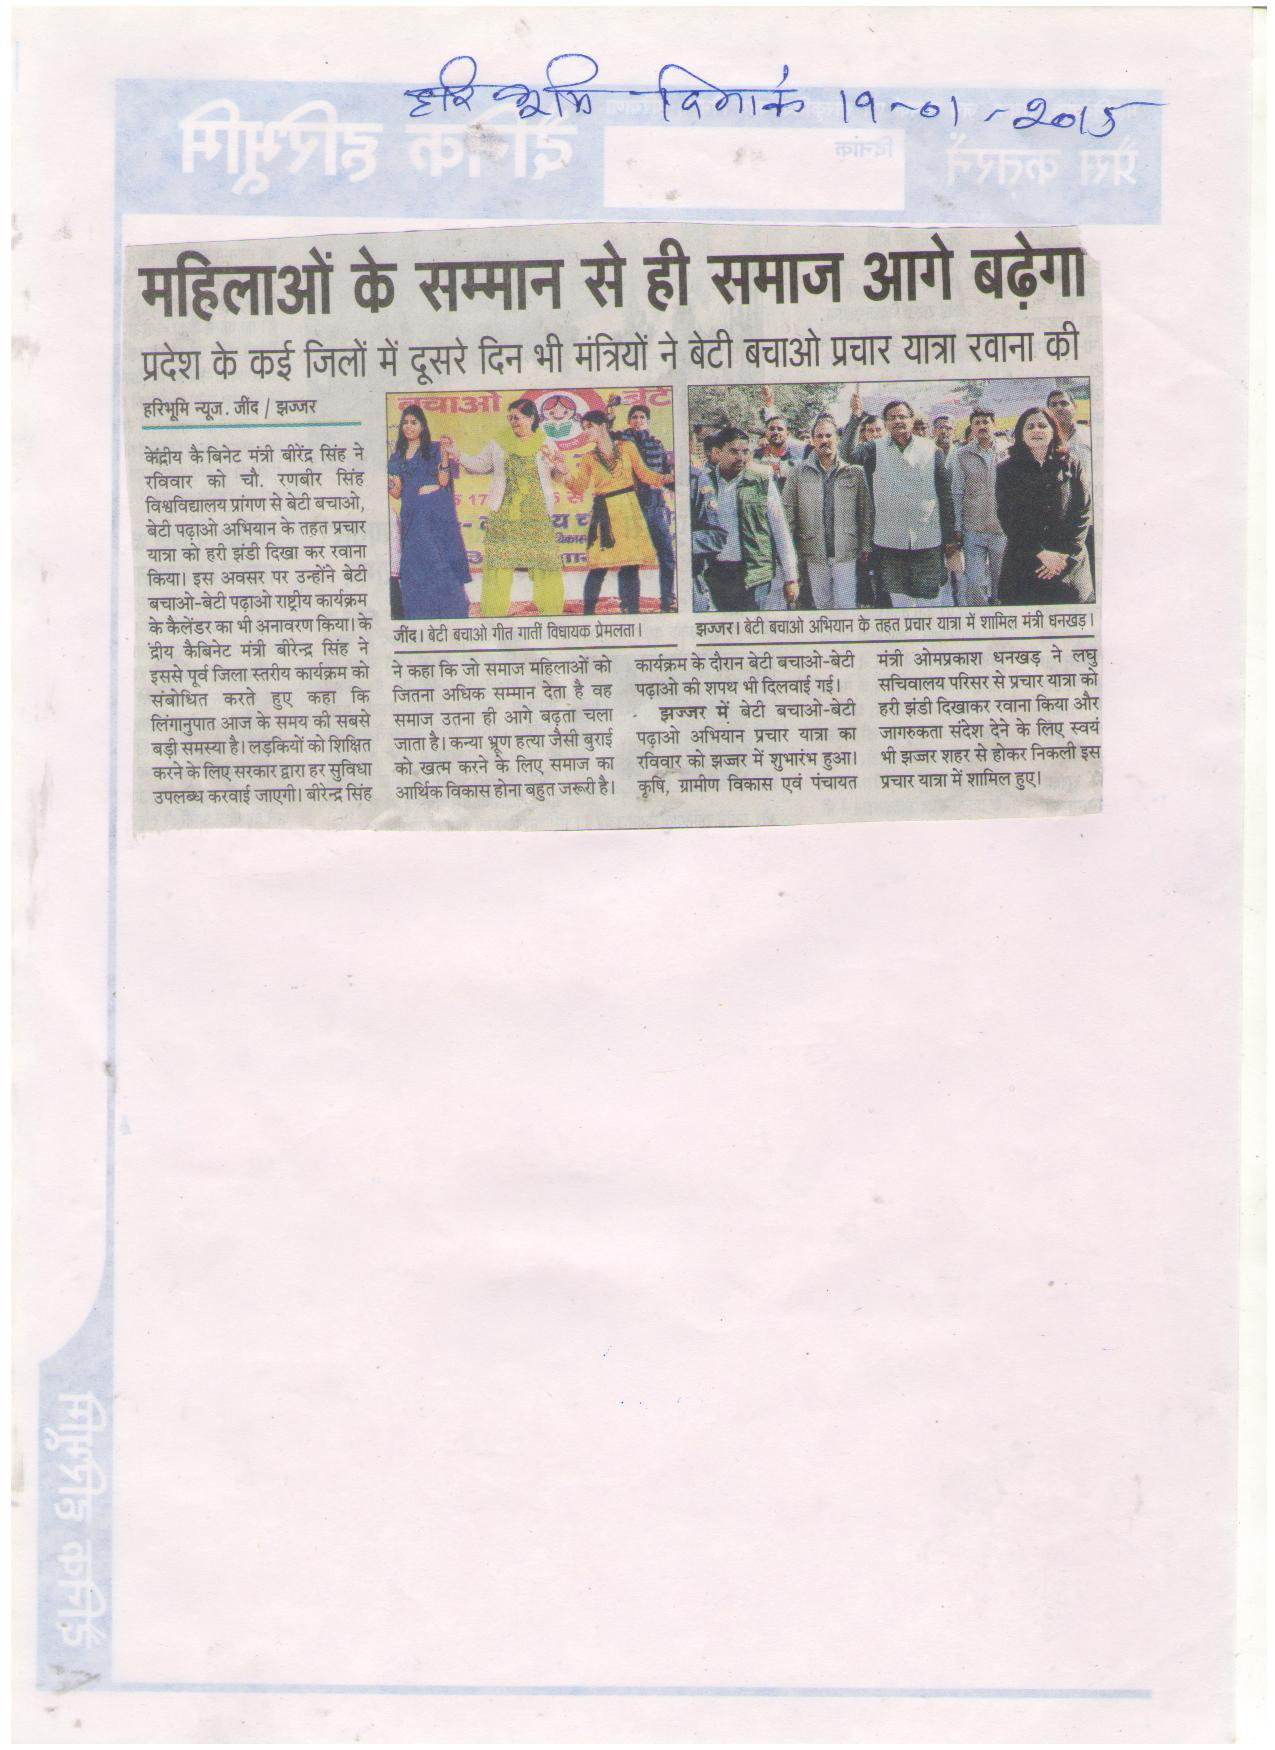 News Clipping regarding Beti Bachao-Beti Padhao - Photo 10